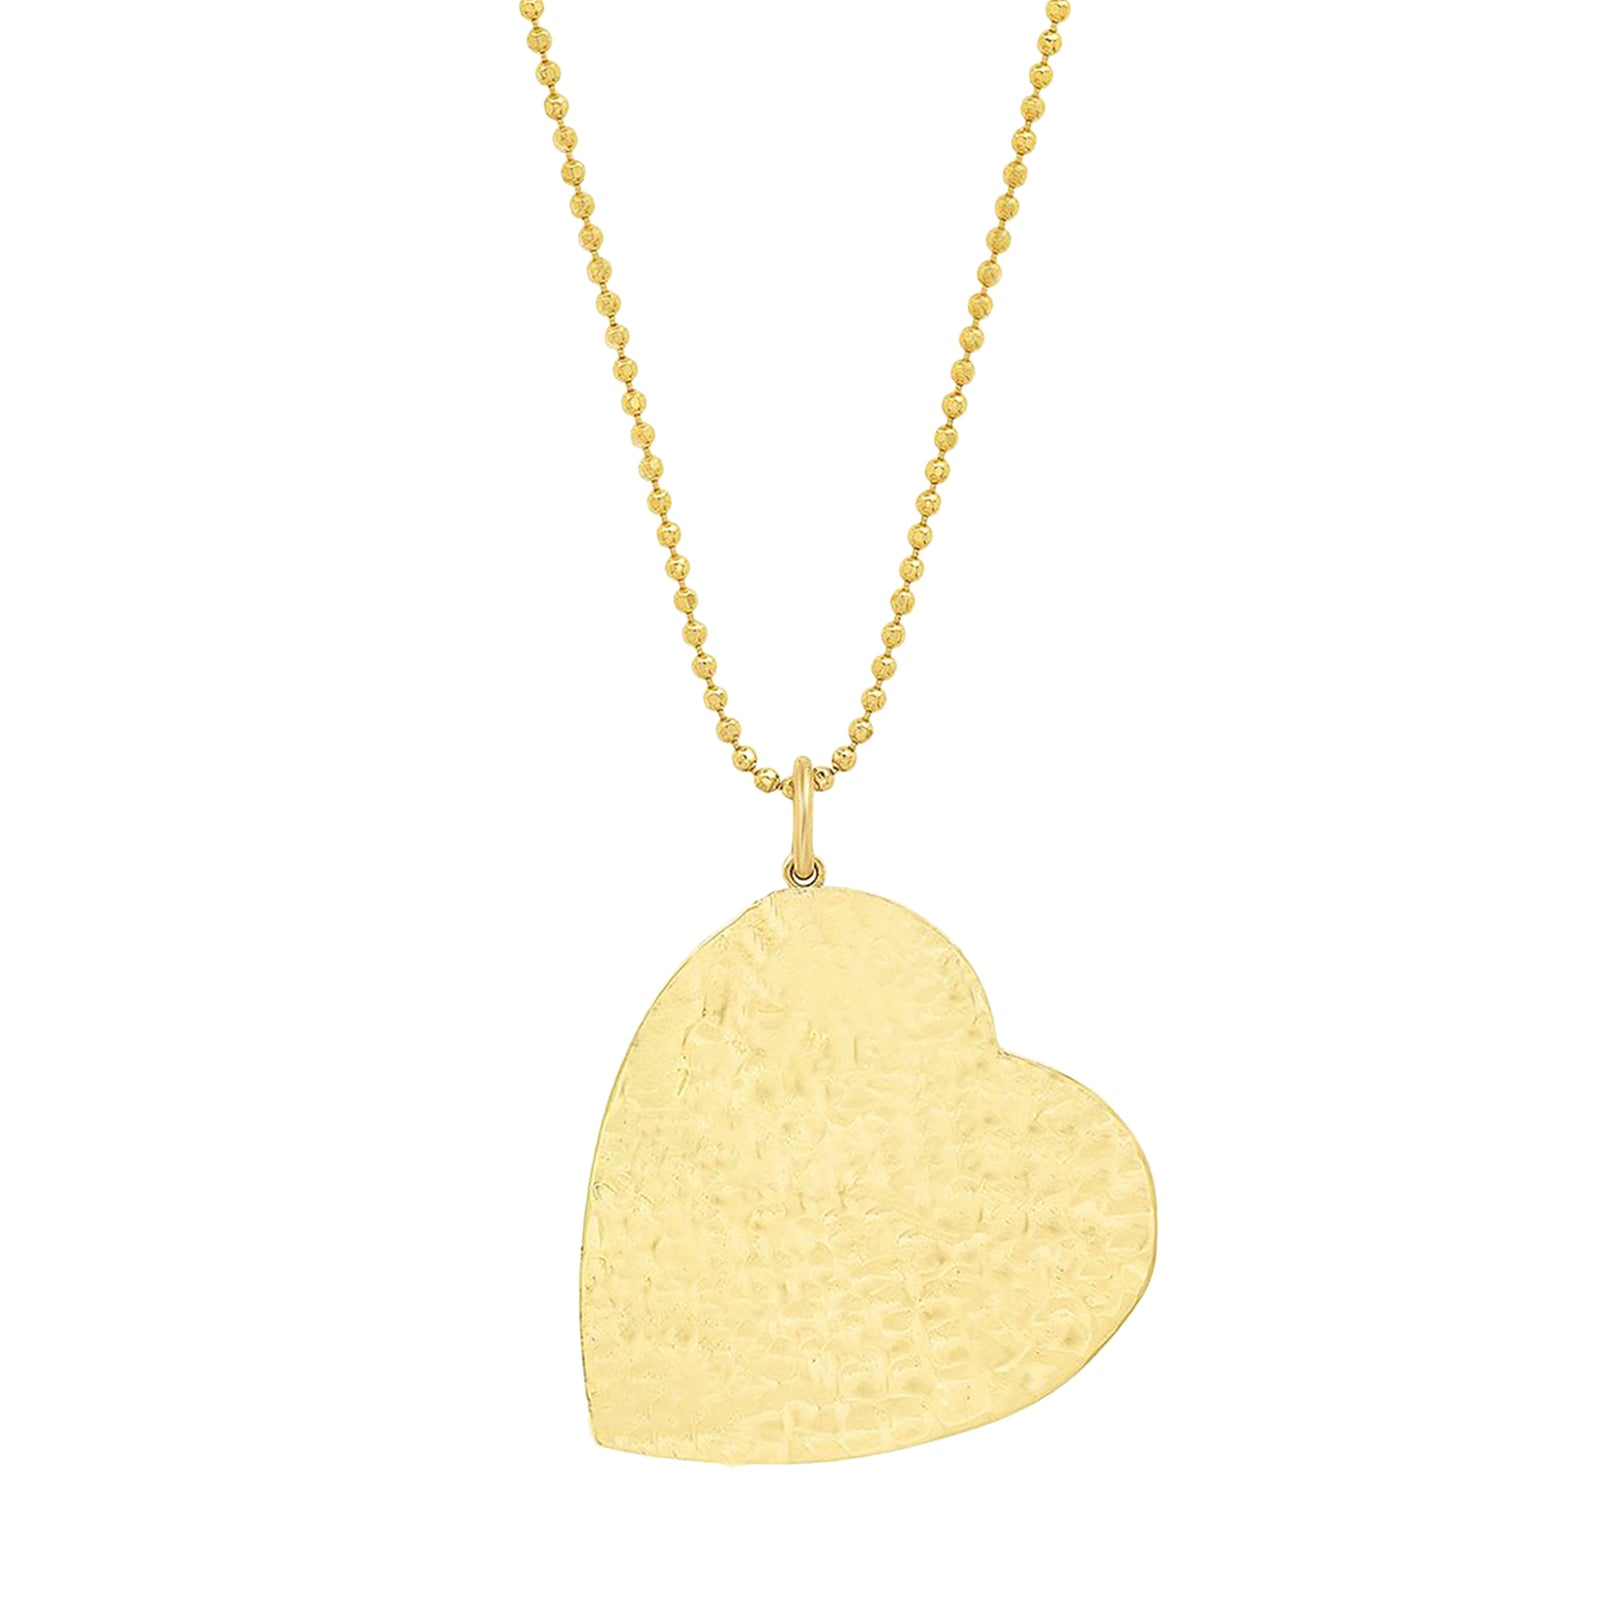 Jennifer Meyer Hammered Heart Pendant Necklace - Large - Necklaces - Broken English Jewelry